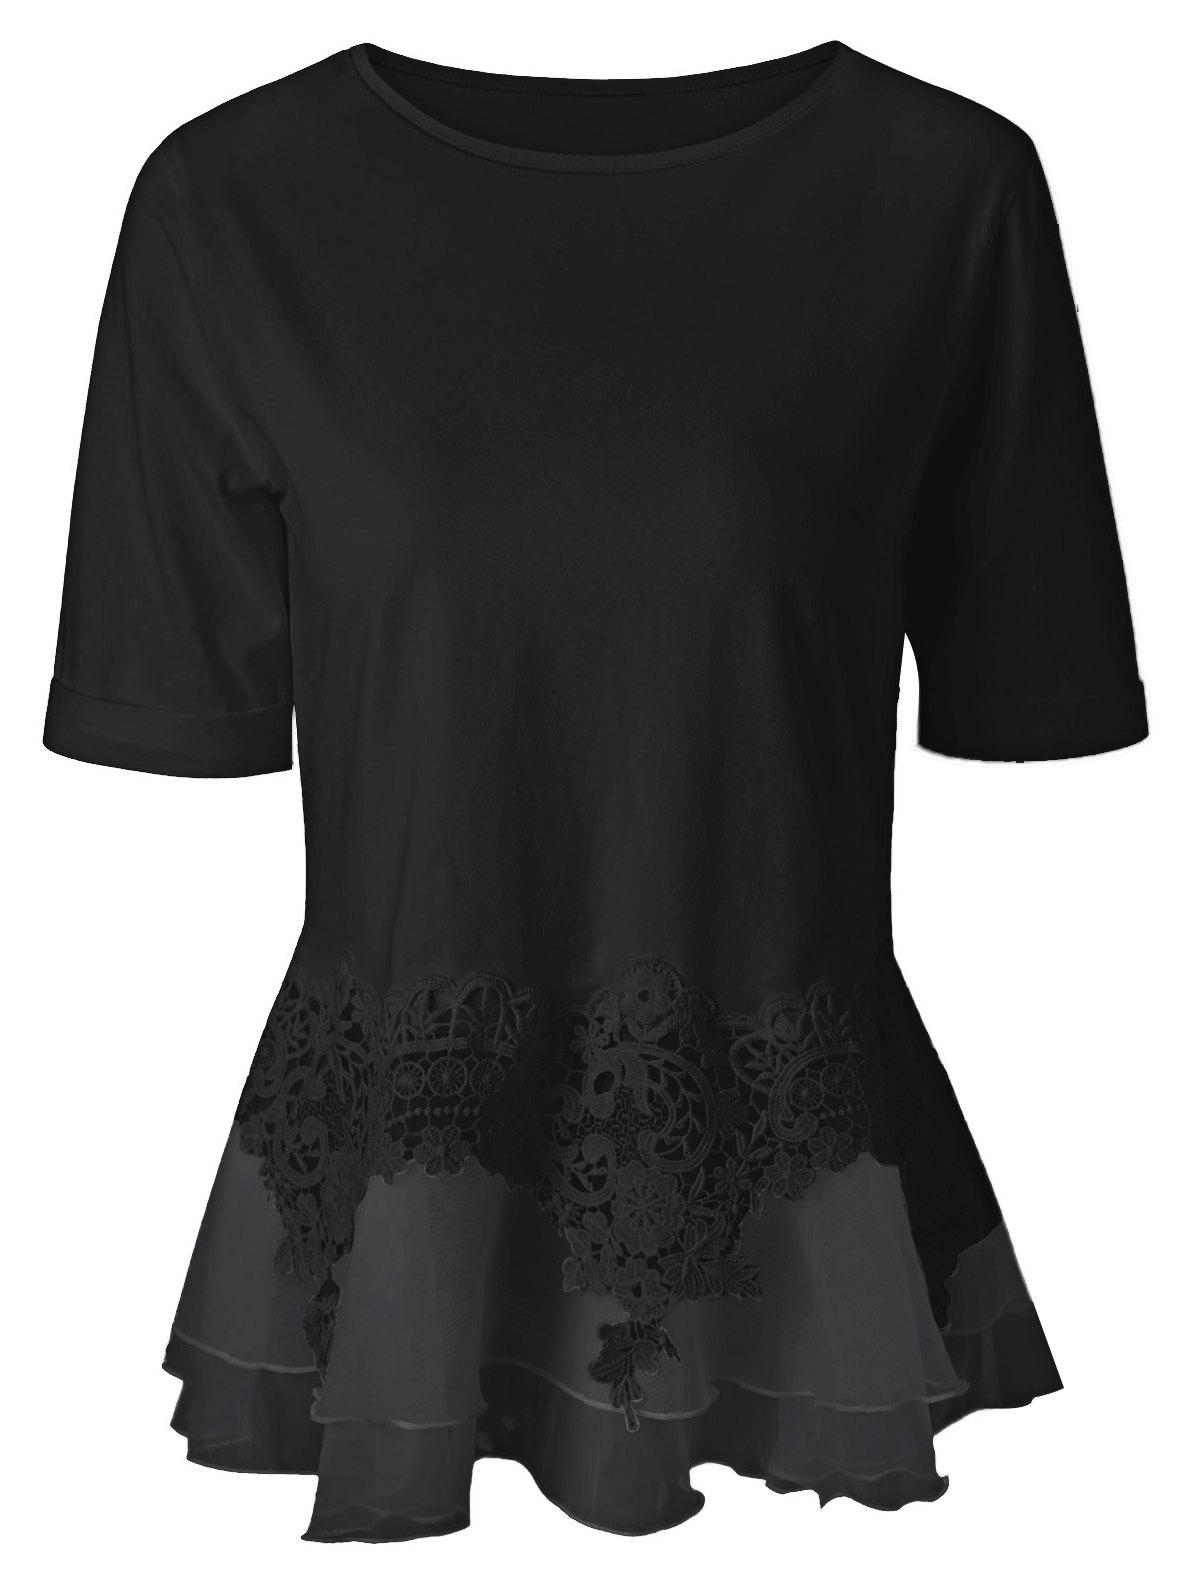 Lace Splicing Layered Peplum BlouseWOMEN<br><br>Size: XL; Color: BLACK; Style: Streetwear; Material: Spandex; Shirt Length: Regular; Sleeve Length: Half; Collar: Jewel Neck; Pattern Type: Patchwork; Season: Summer; Weight: 0.197kg; Package Contents: 1 x Blouse;